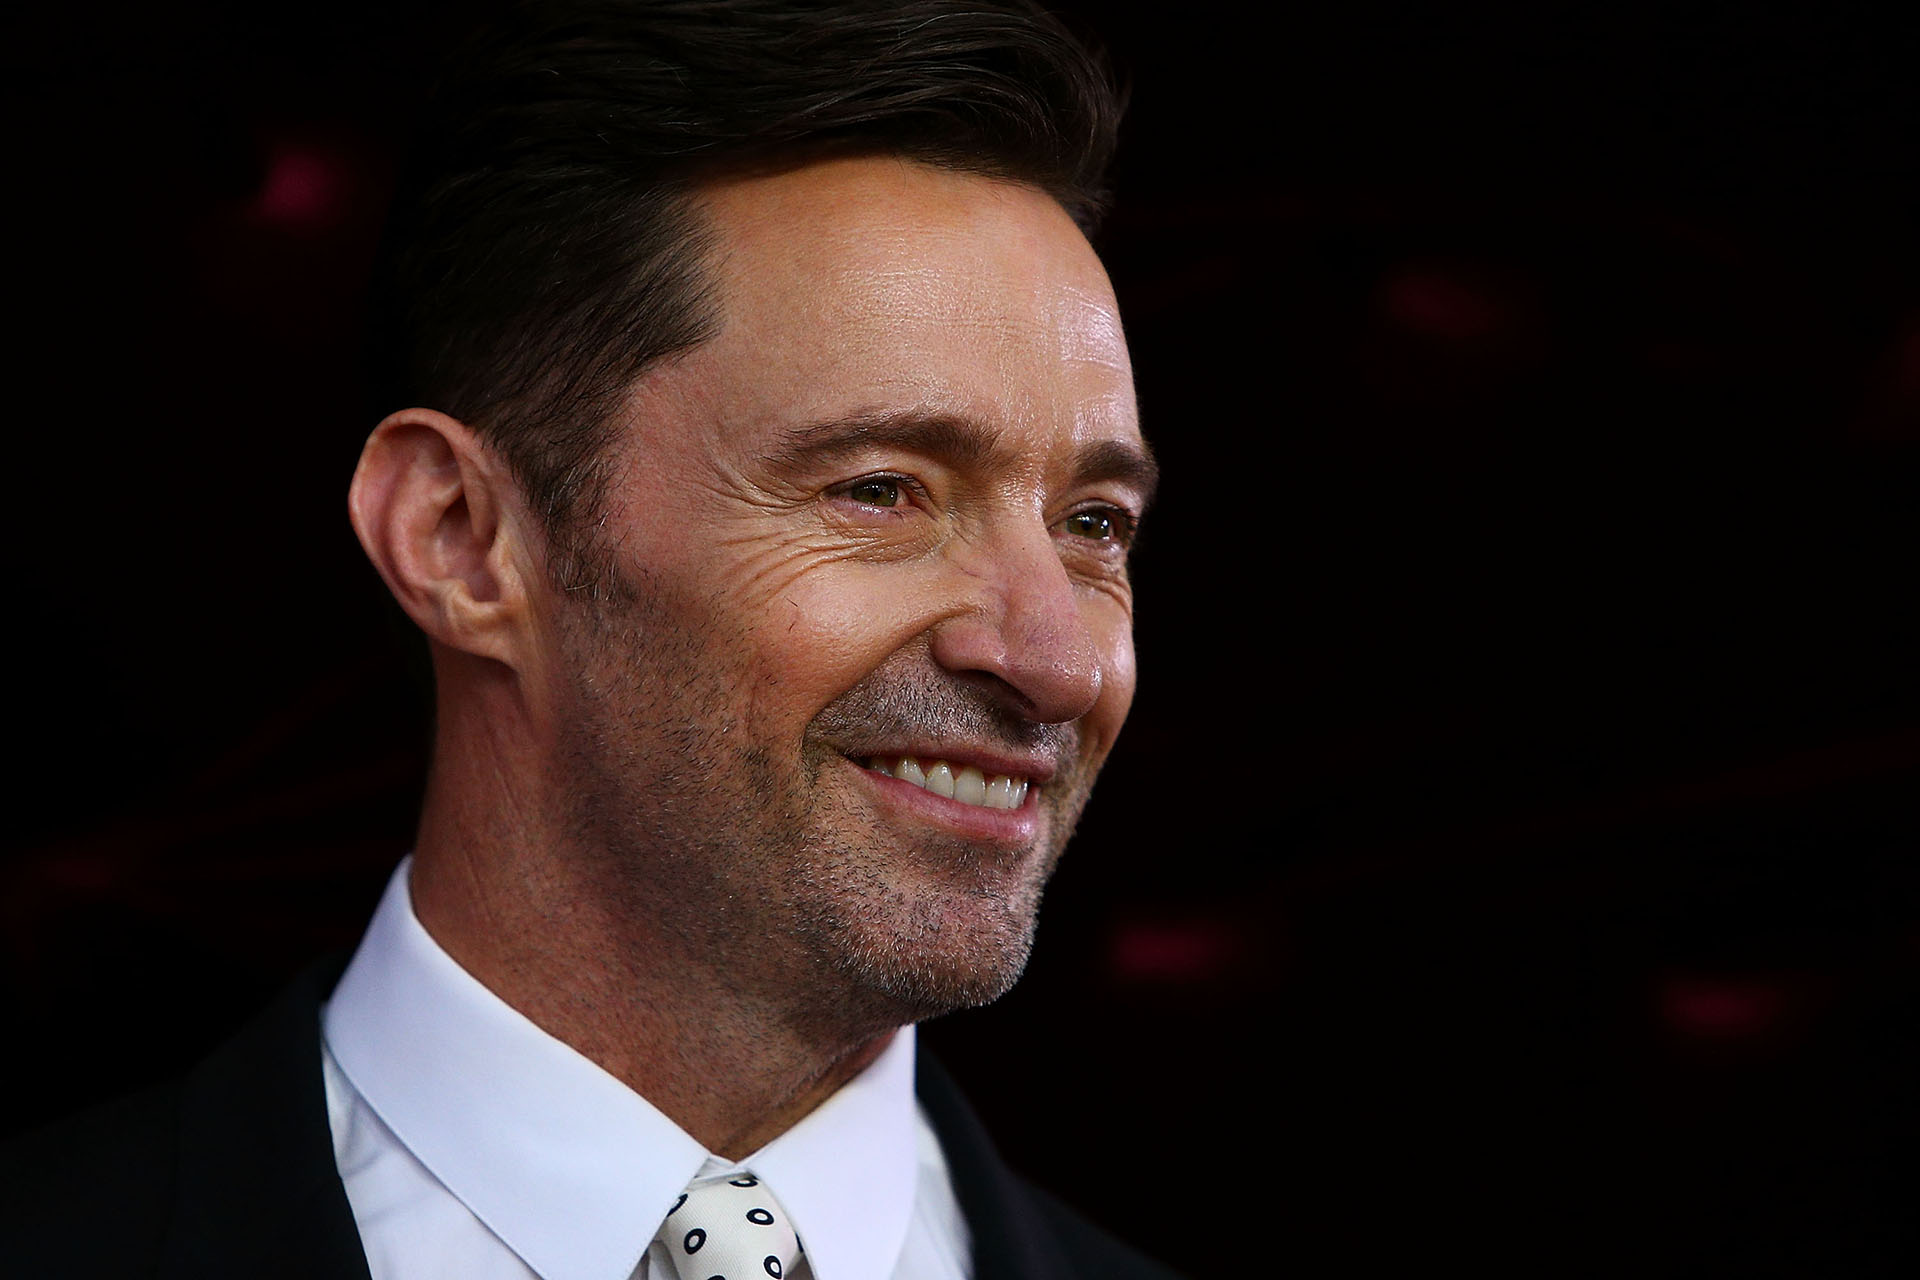 Hugh Jackman a su llegada a la red carpet de la premiere de The Greatest Showman, que se llevó a cabo en The Star, en Sydney